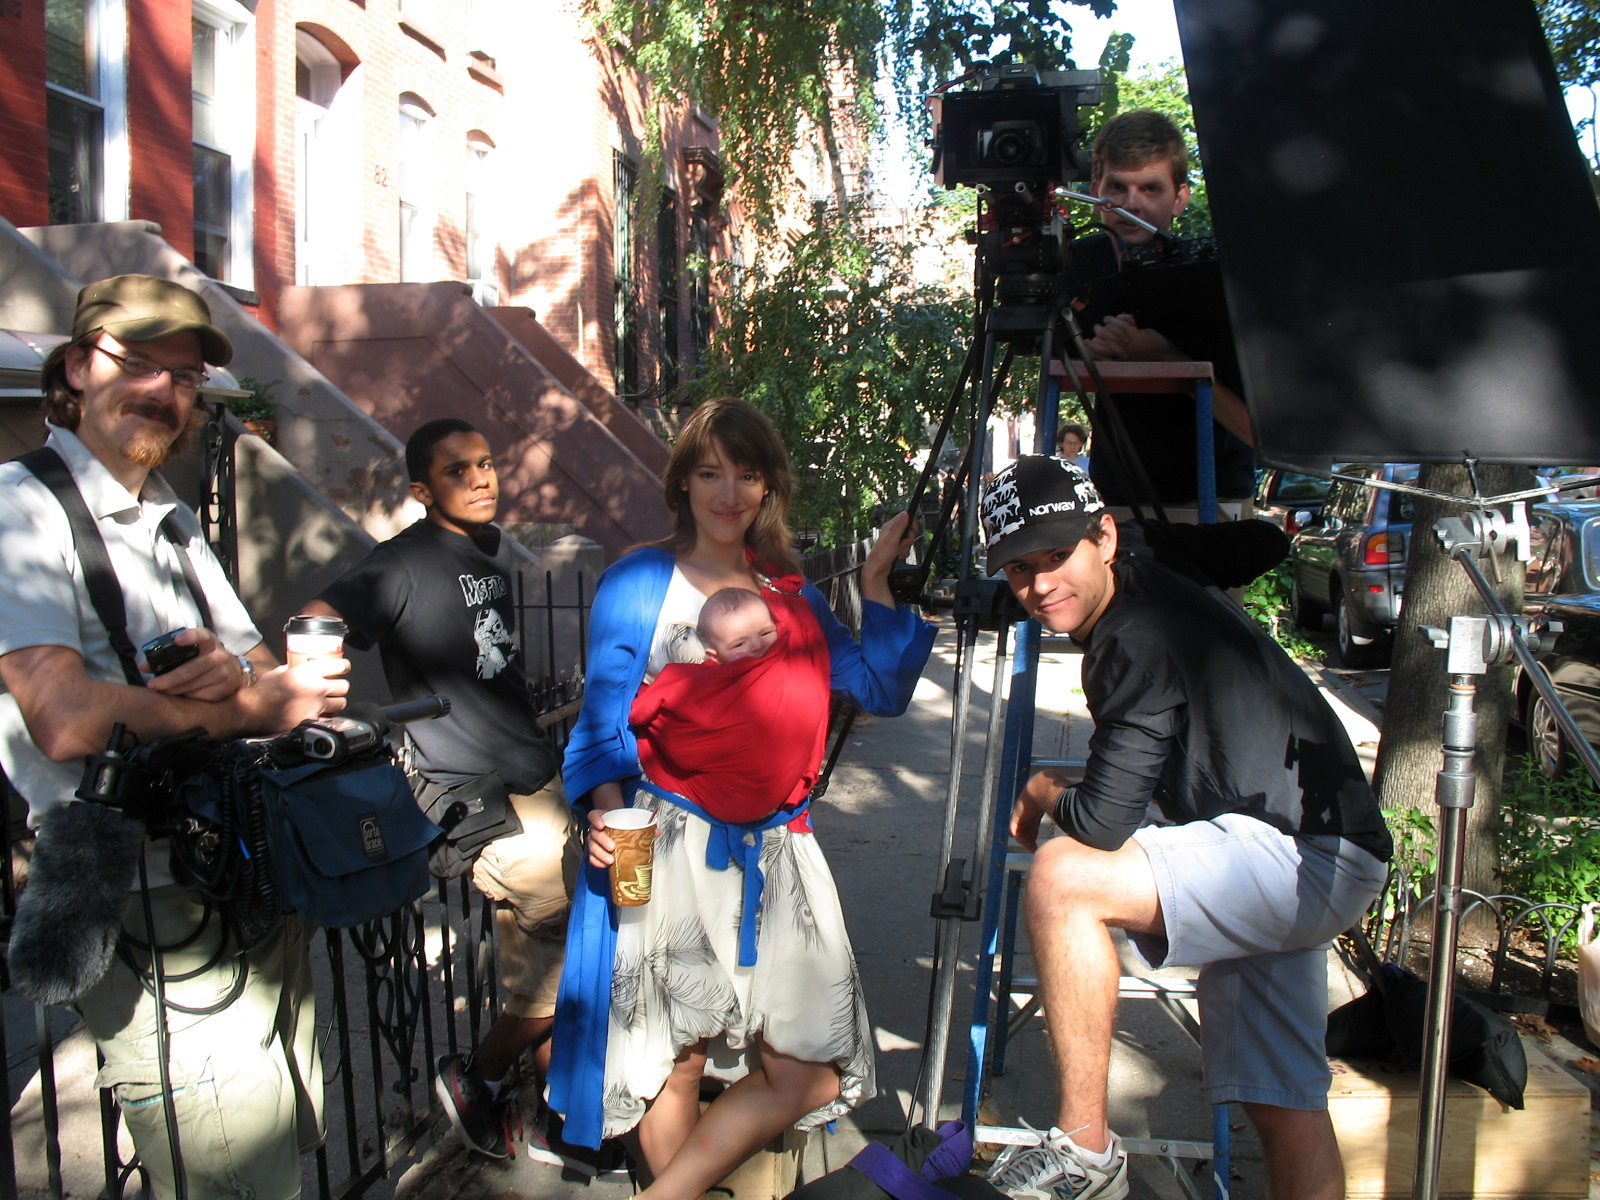 Shooting 'Damn it, Andy' in NYC with daughter Emma